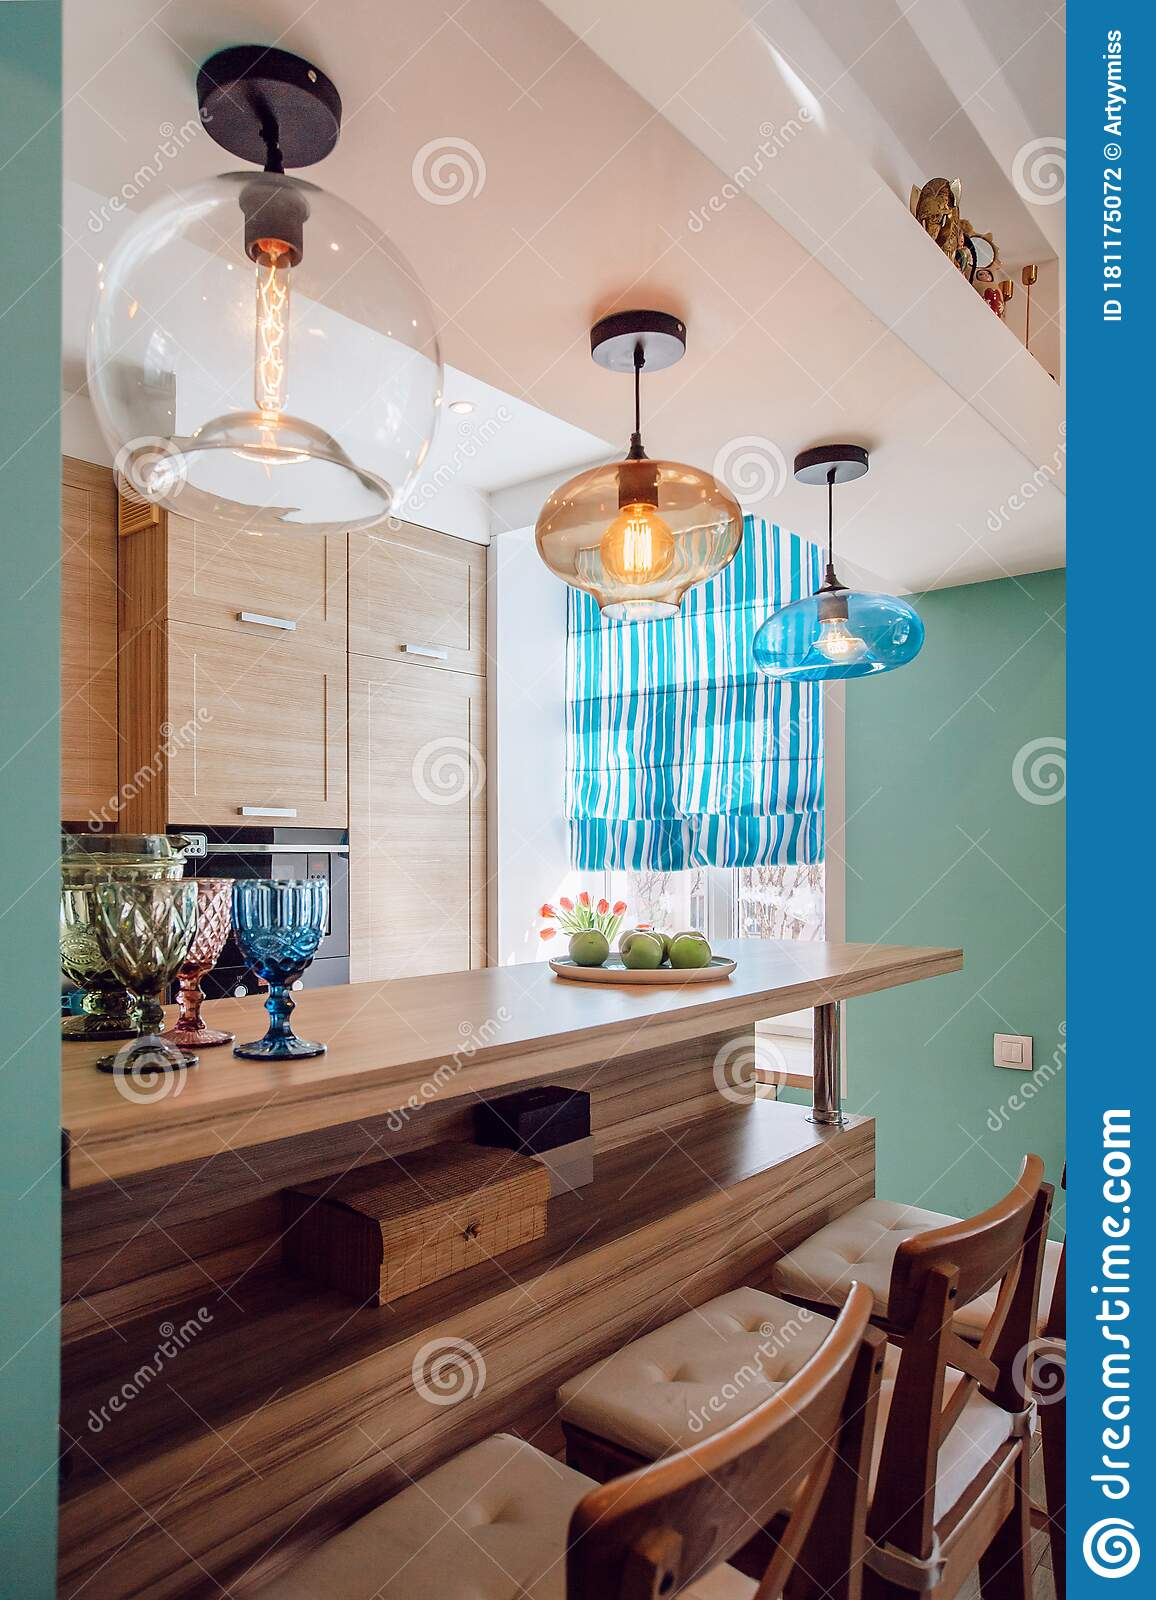 Home Interior Design For Kitchen With Bar Counter Stock Photo ...